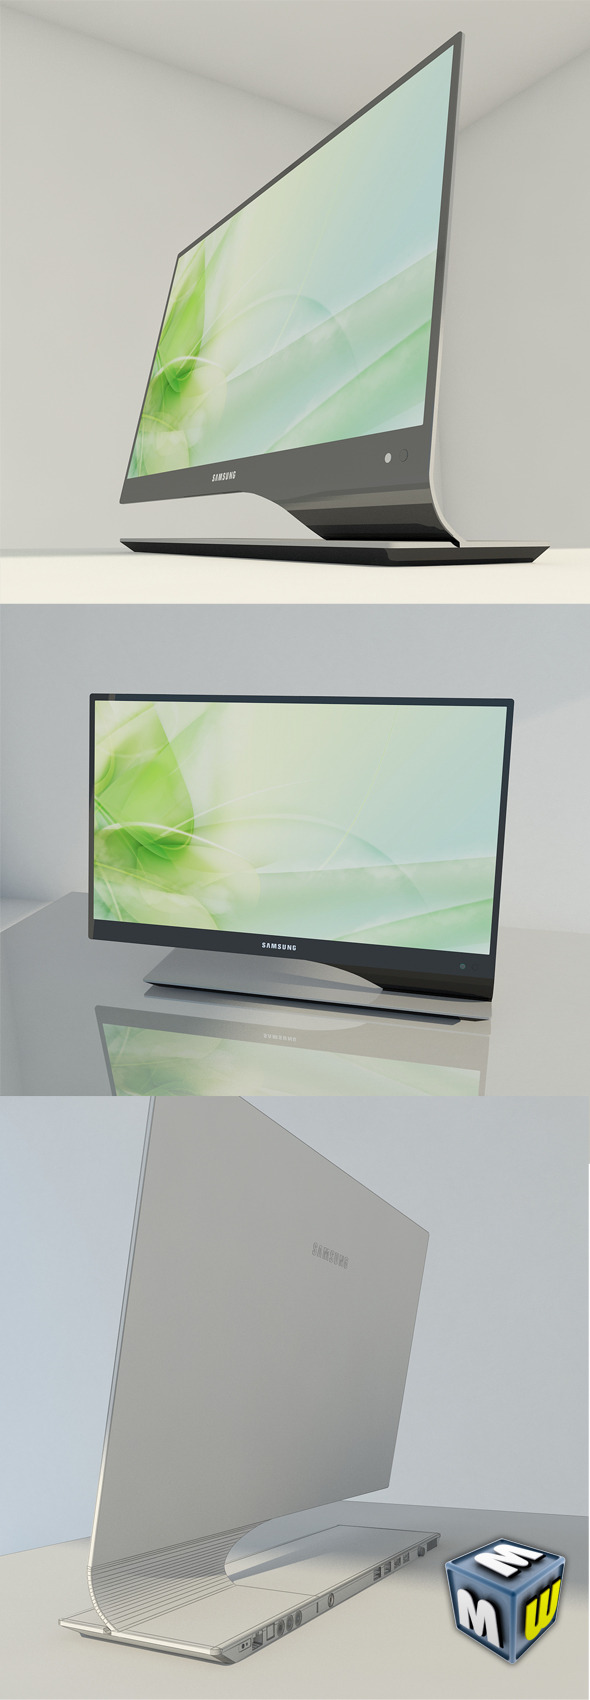 Samsung SyncMaster MAX 2011 - 3DOcean Item for Sale